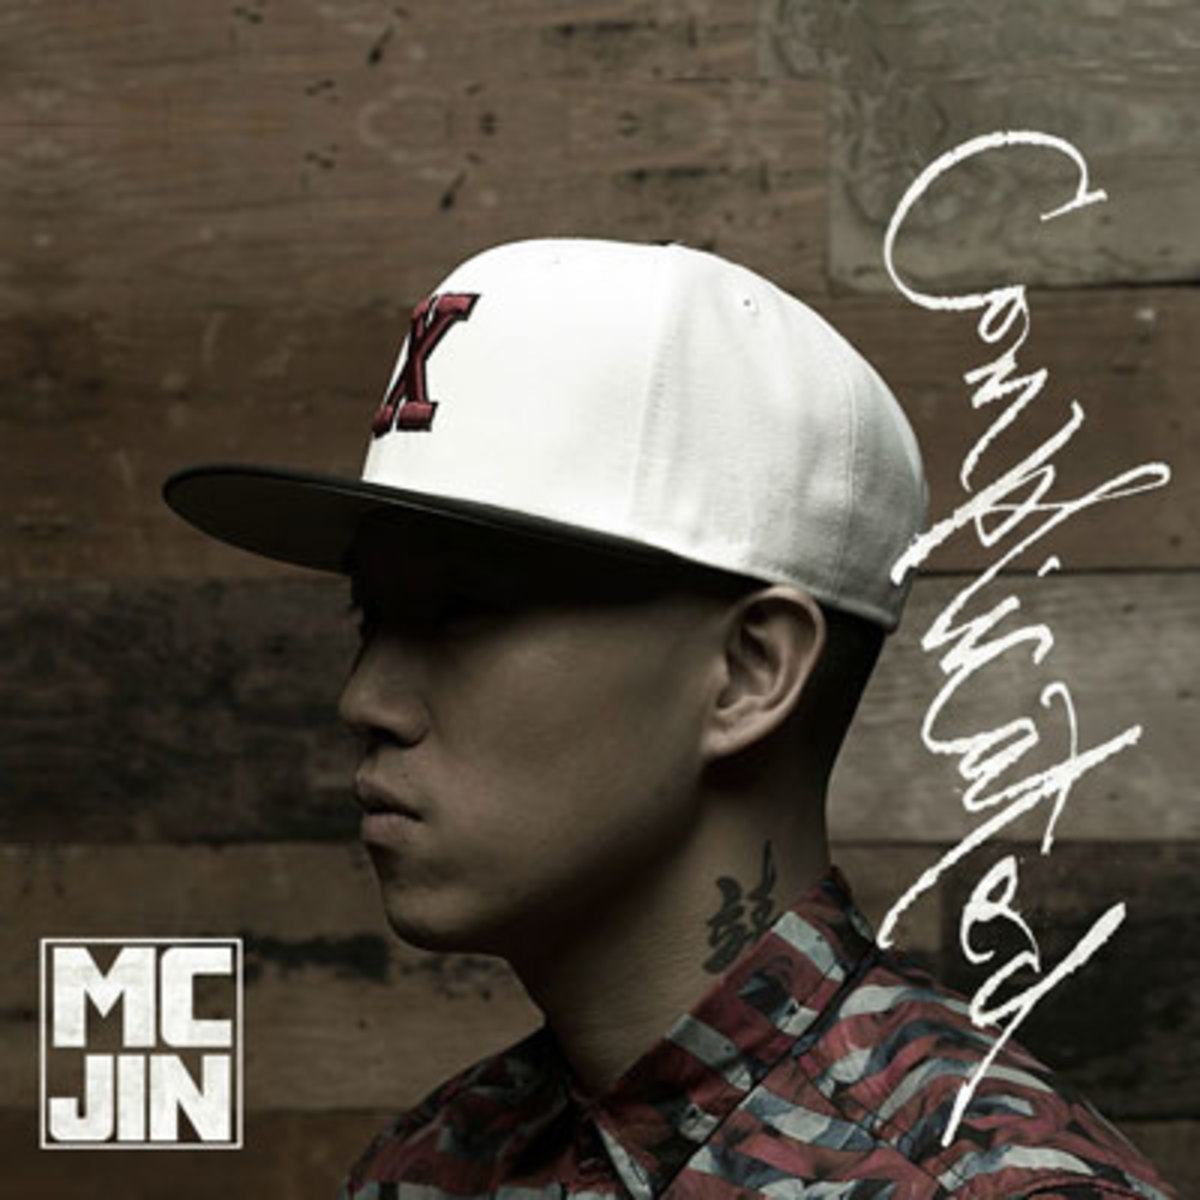 mcjin-complicated.jpg